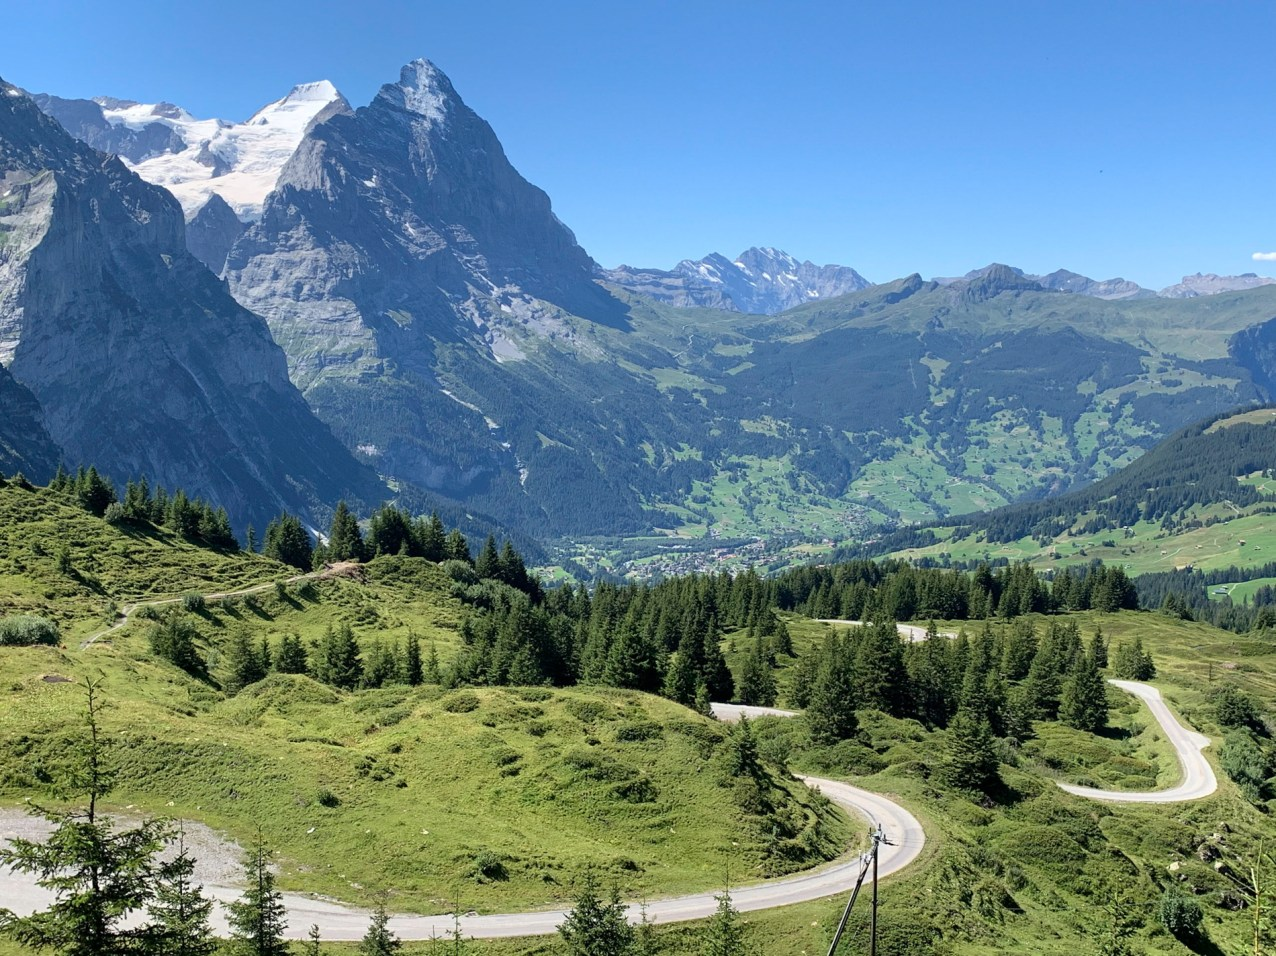 Looking west from Grosse Scheidegg towards the Eiger North Face and Grindelwald